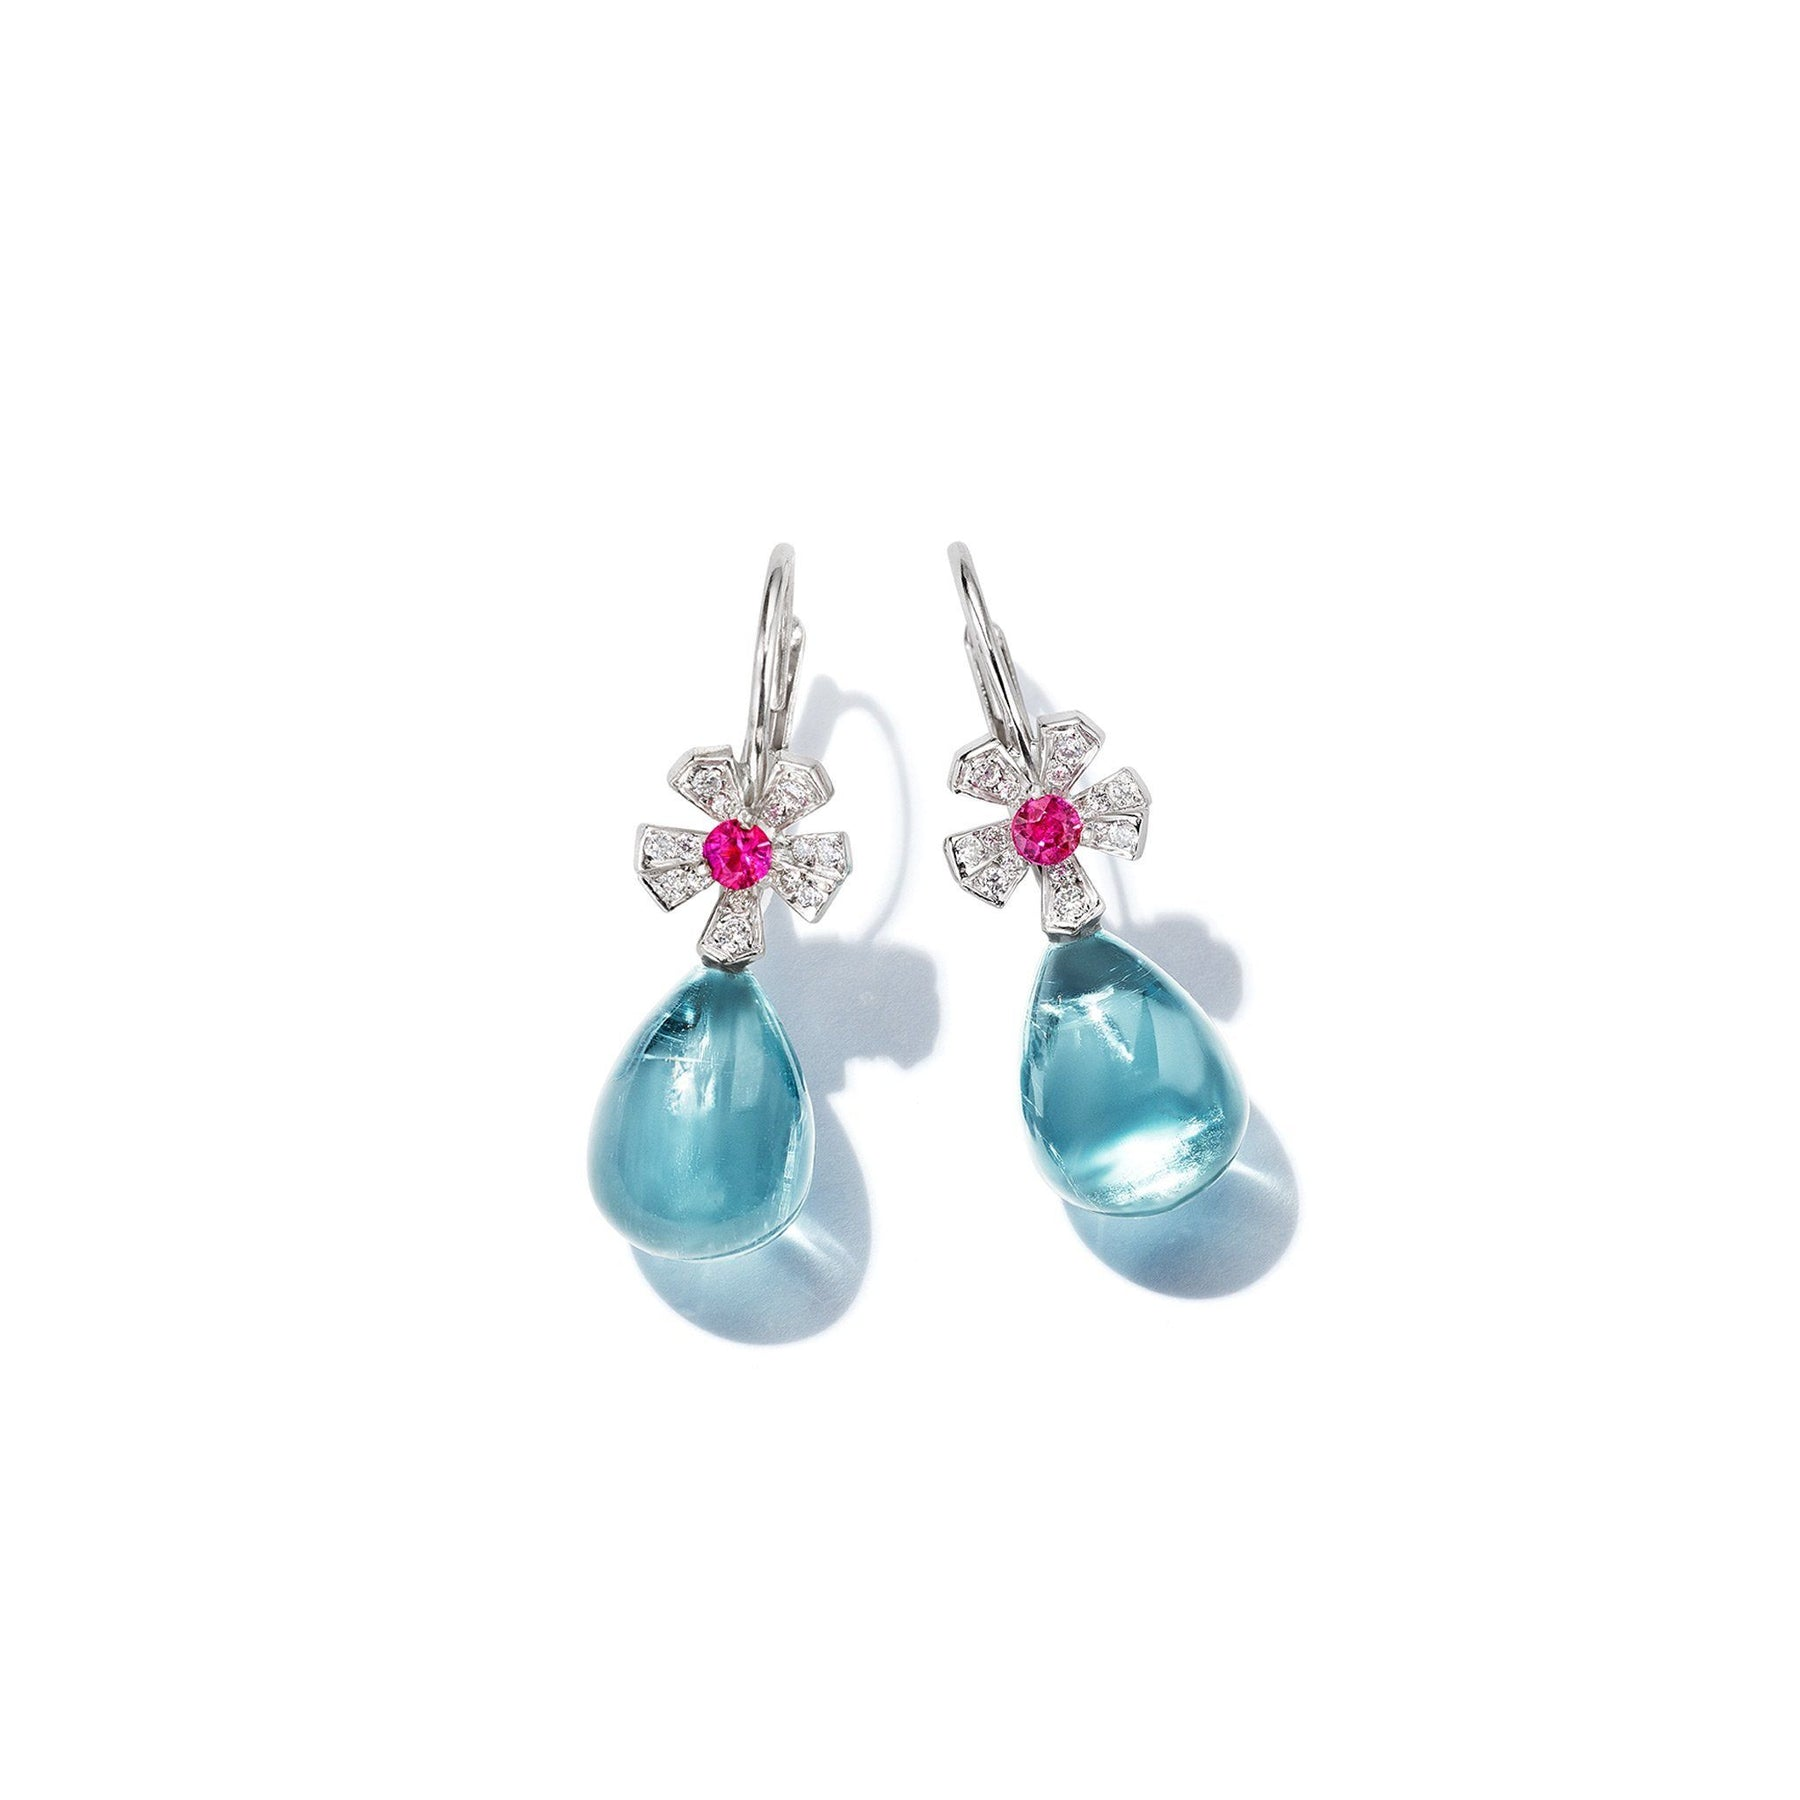 Wonderland Teardrop Aquamarine Earrings_18k White Gold